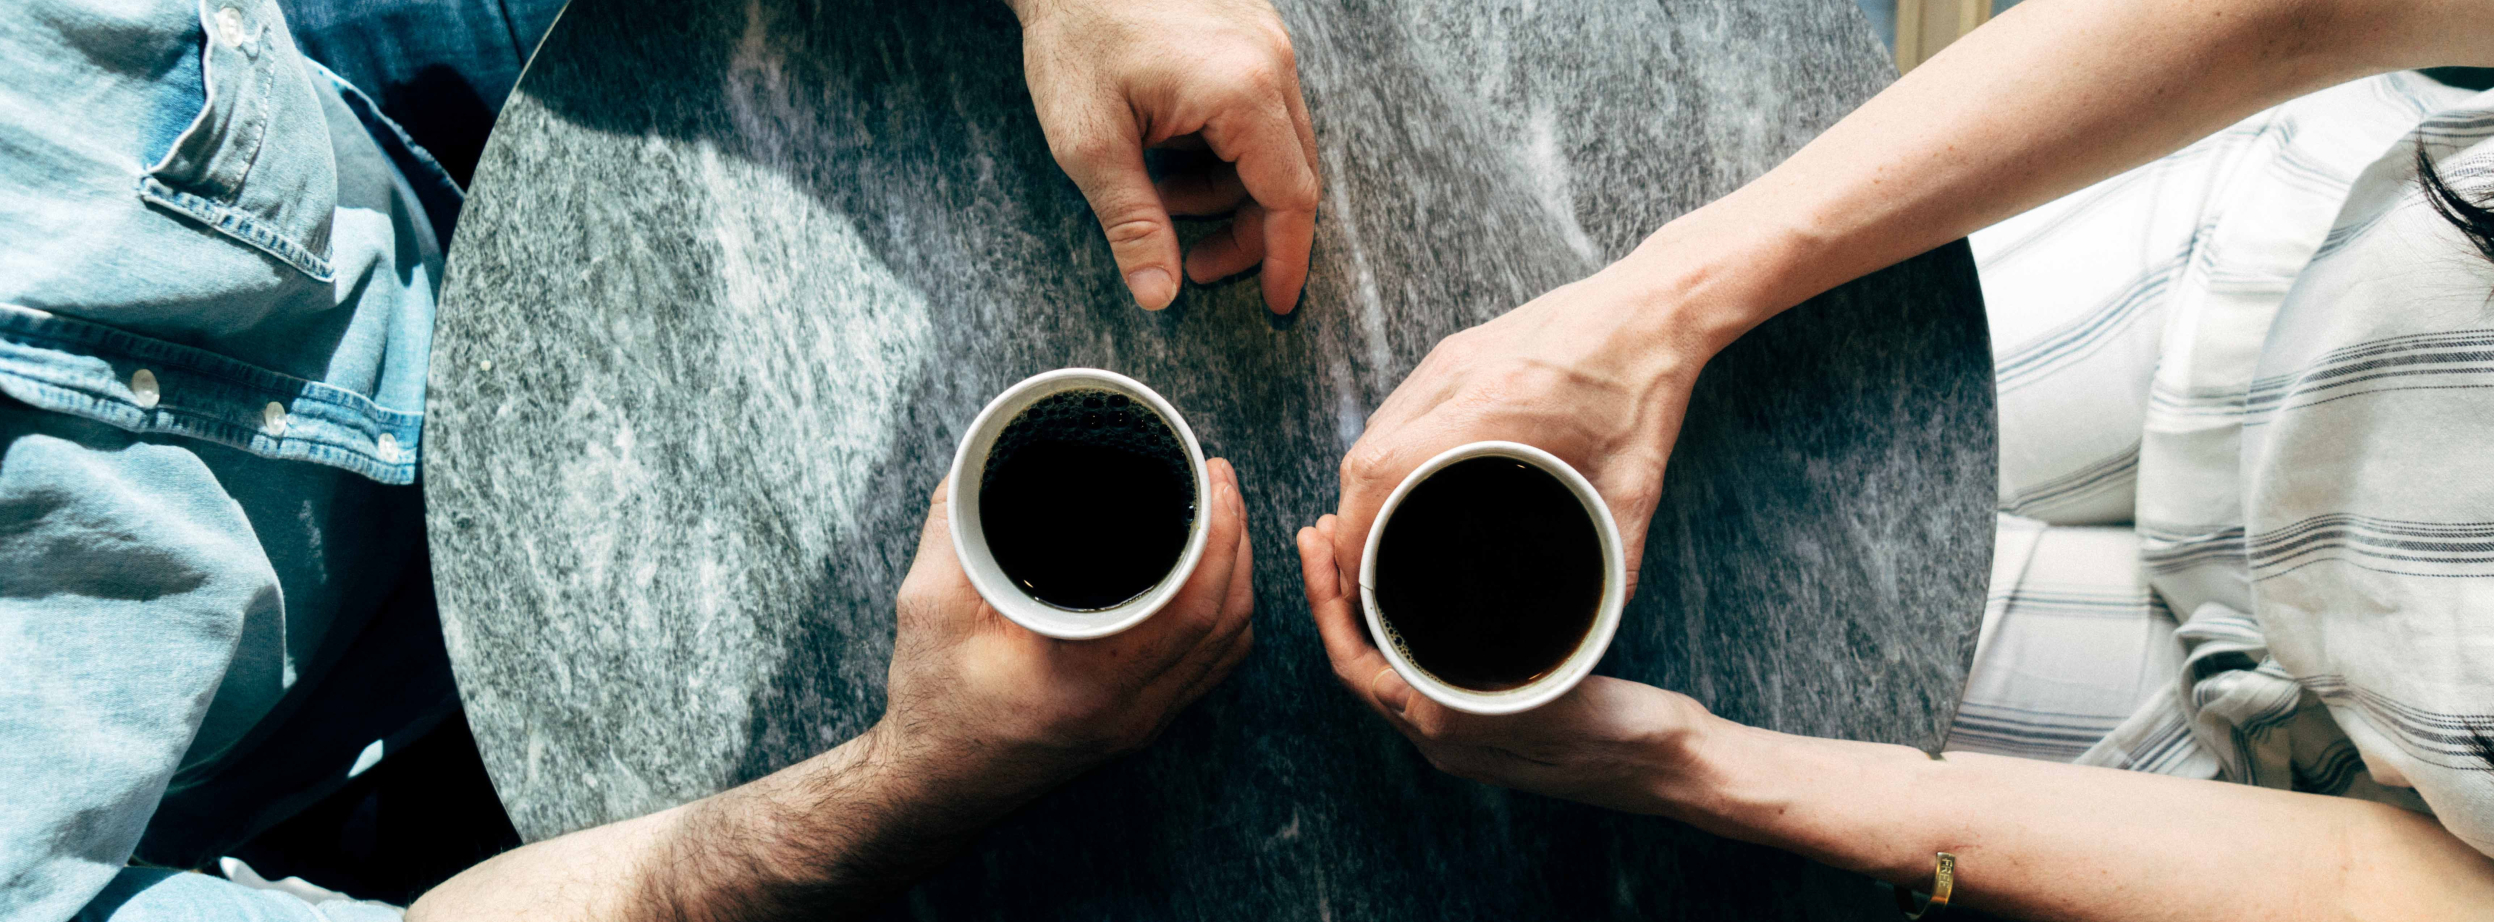 Two men with cups of coffee having a mock professional diiscussion